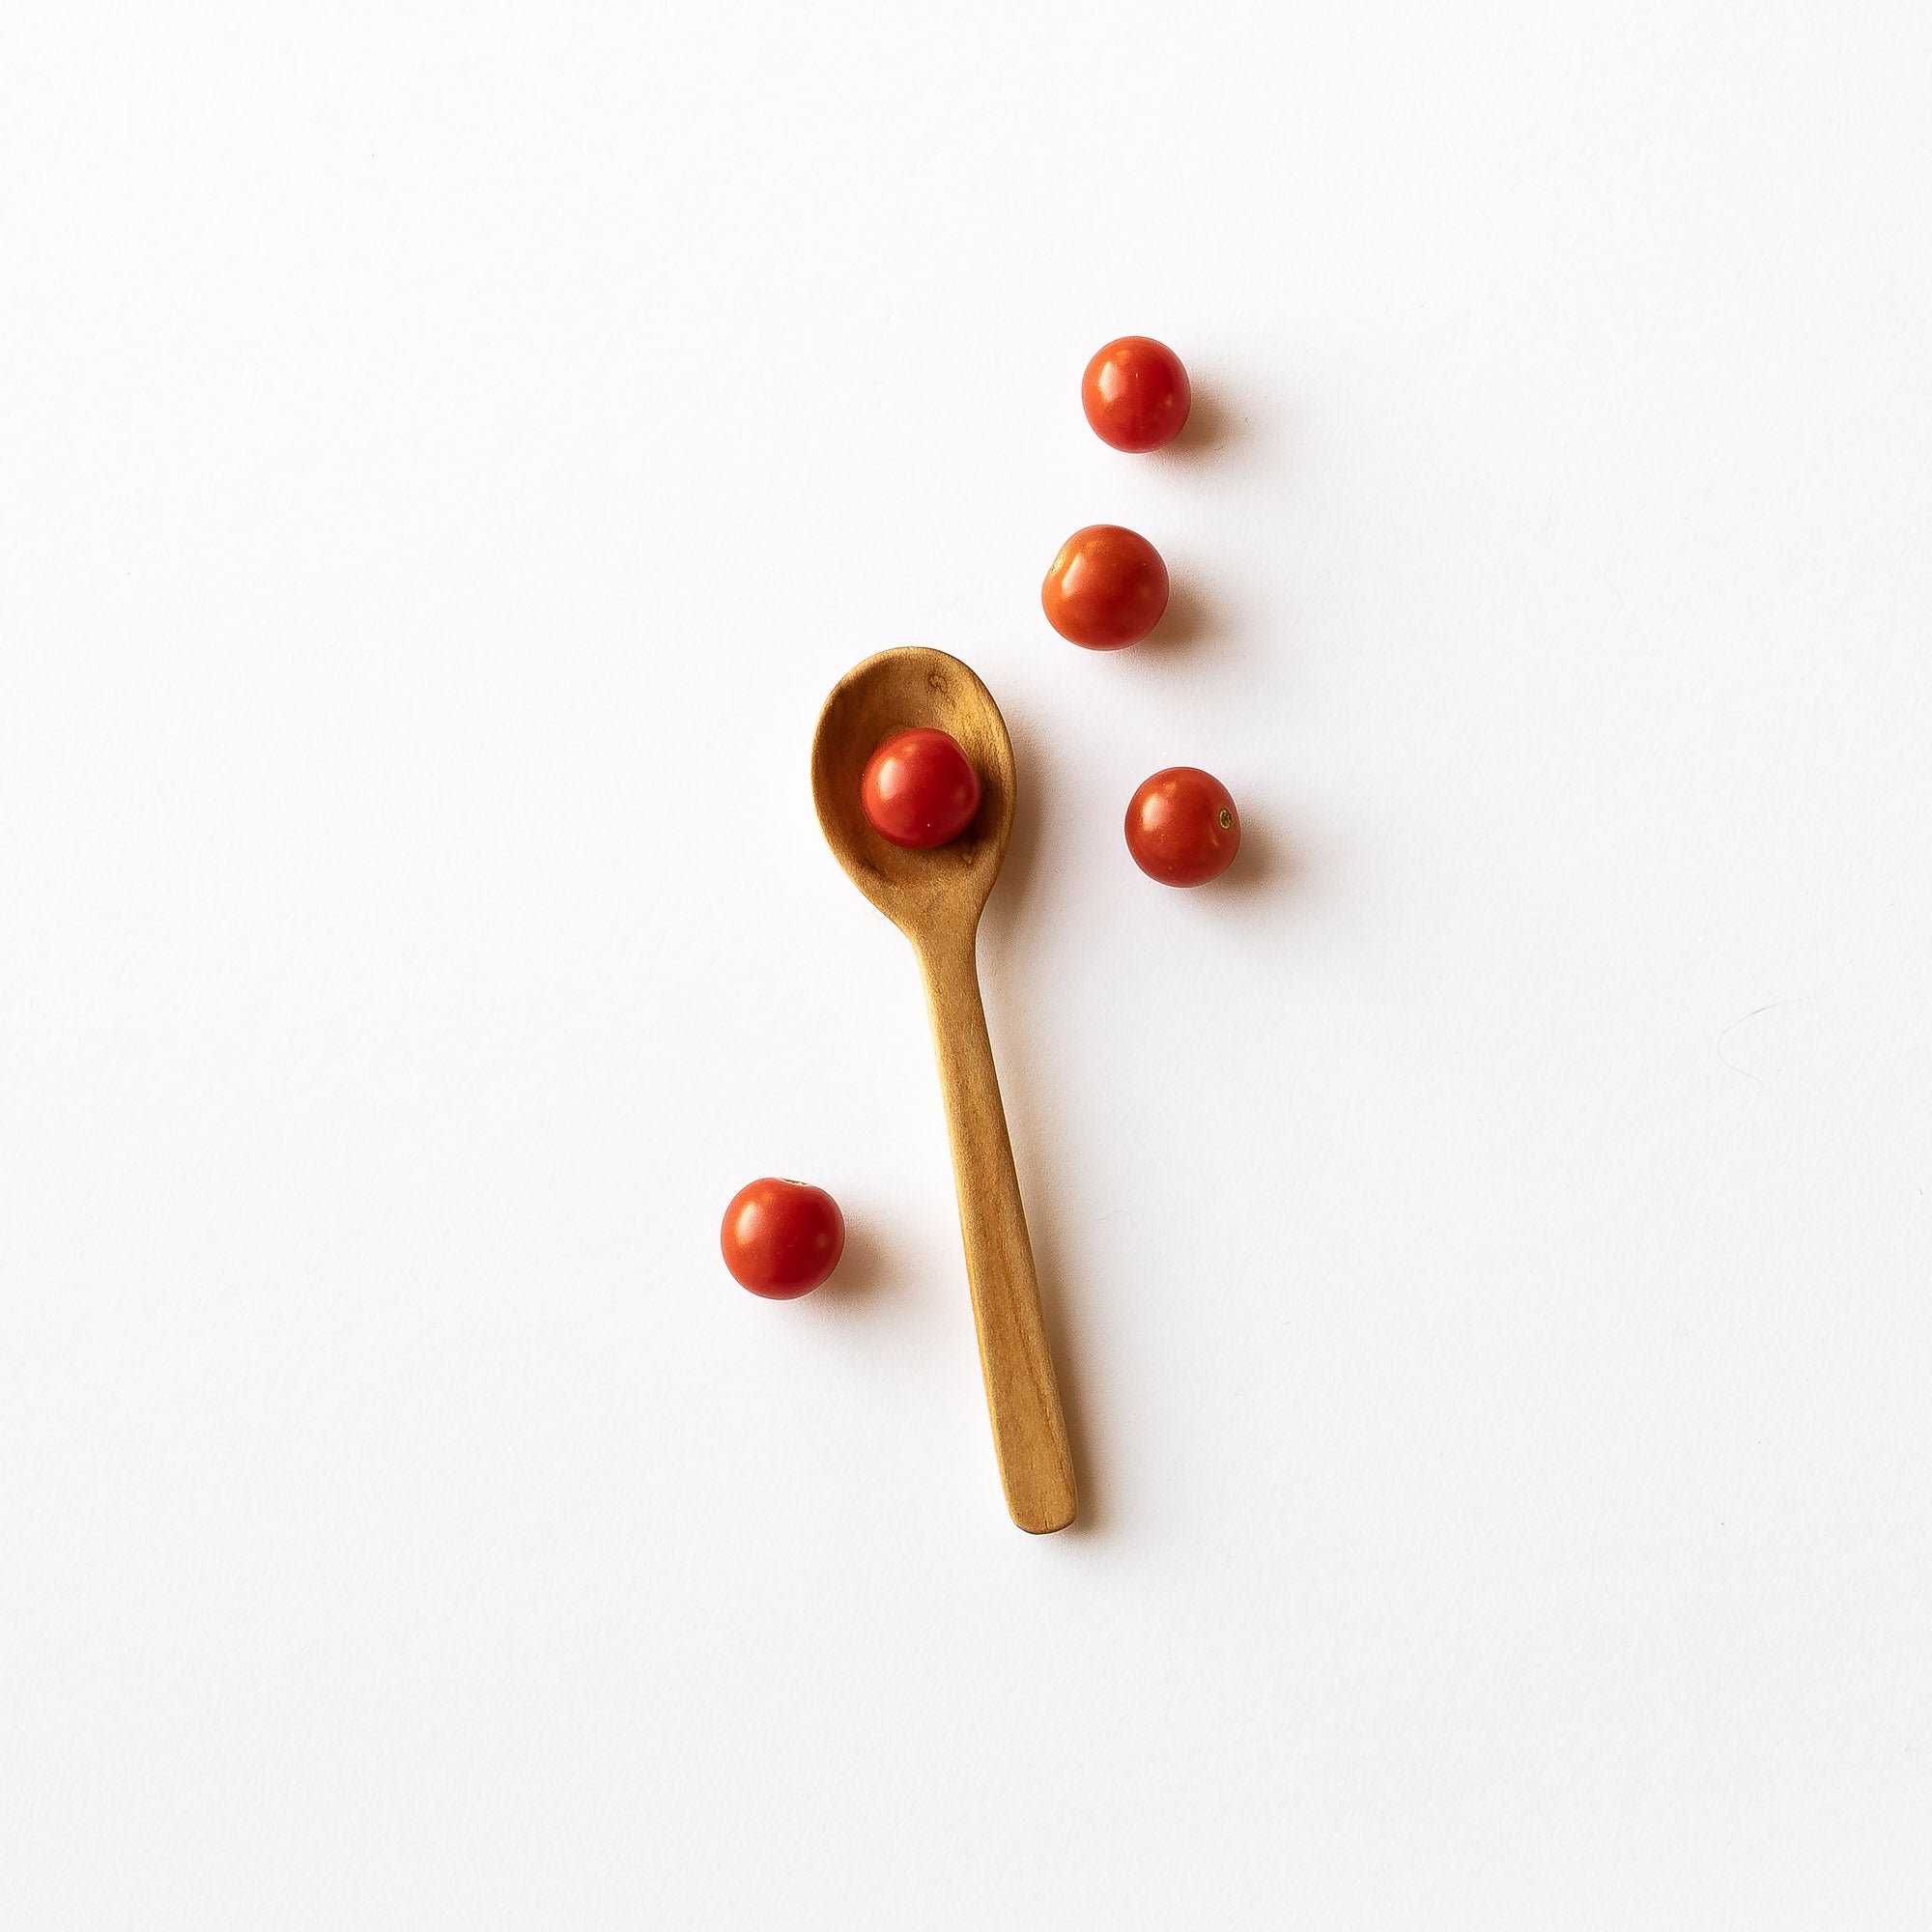 Hand-carved Basswood Little Spoon Shown with Cherry Tomatoes - Sold by Chic & Basta